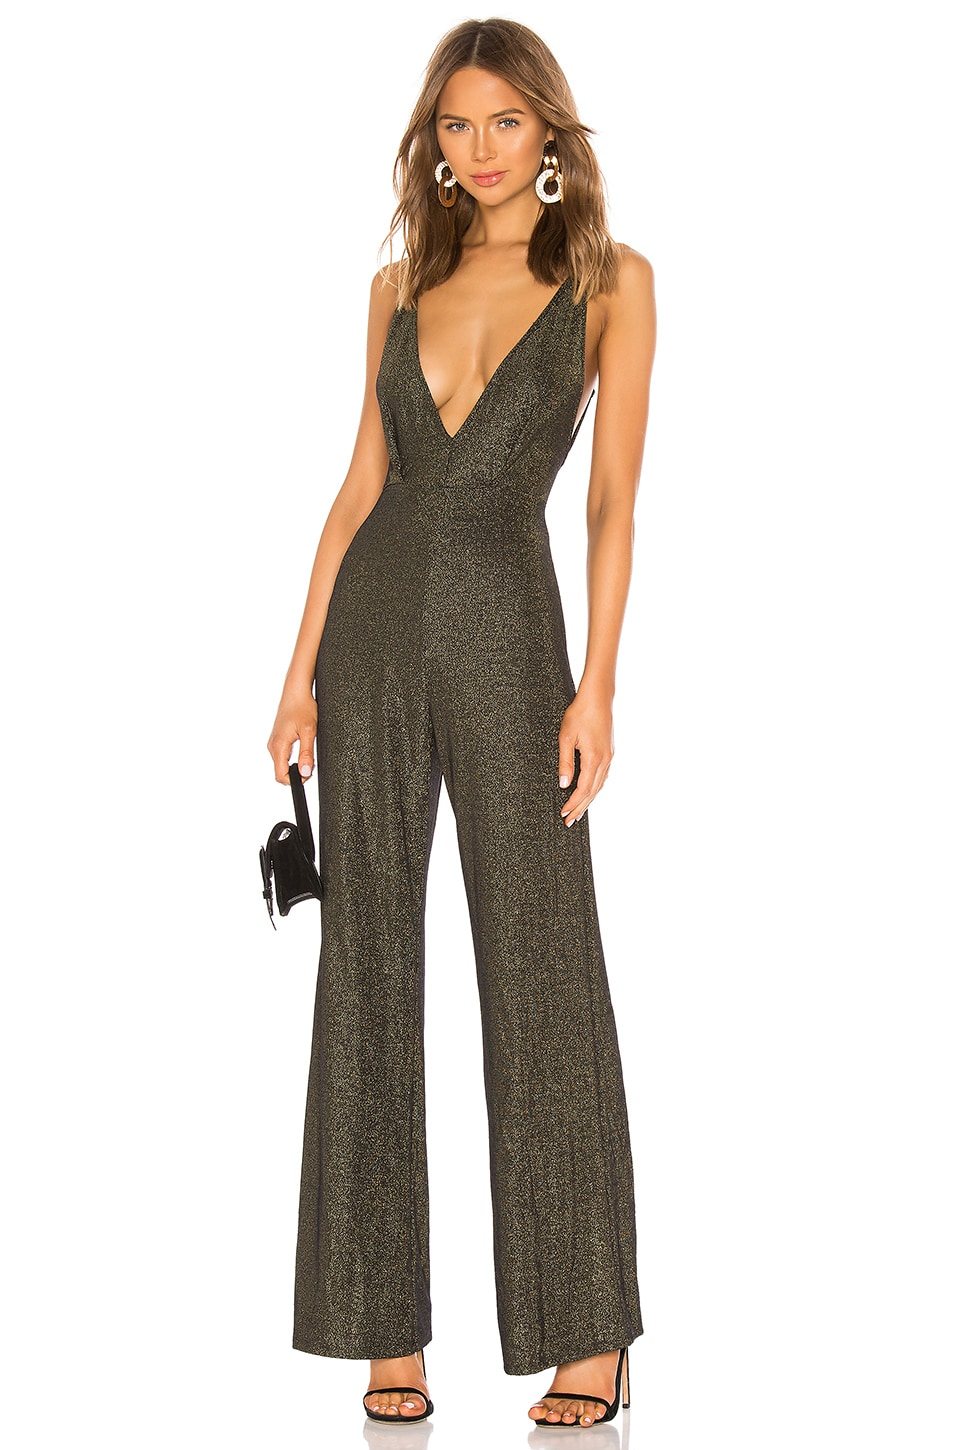 Michael Costello X REVOLVE Ditra Jumpsuit in Black & Gold